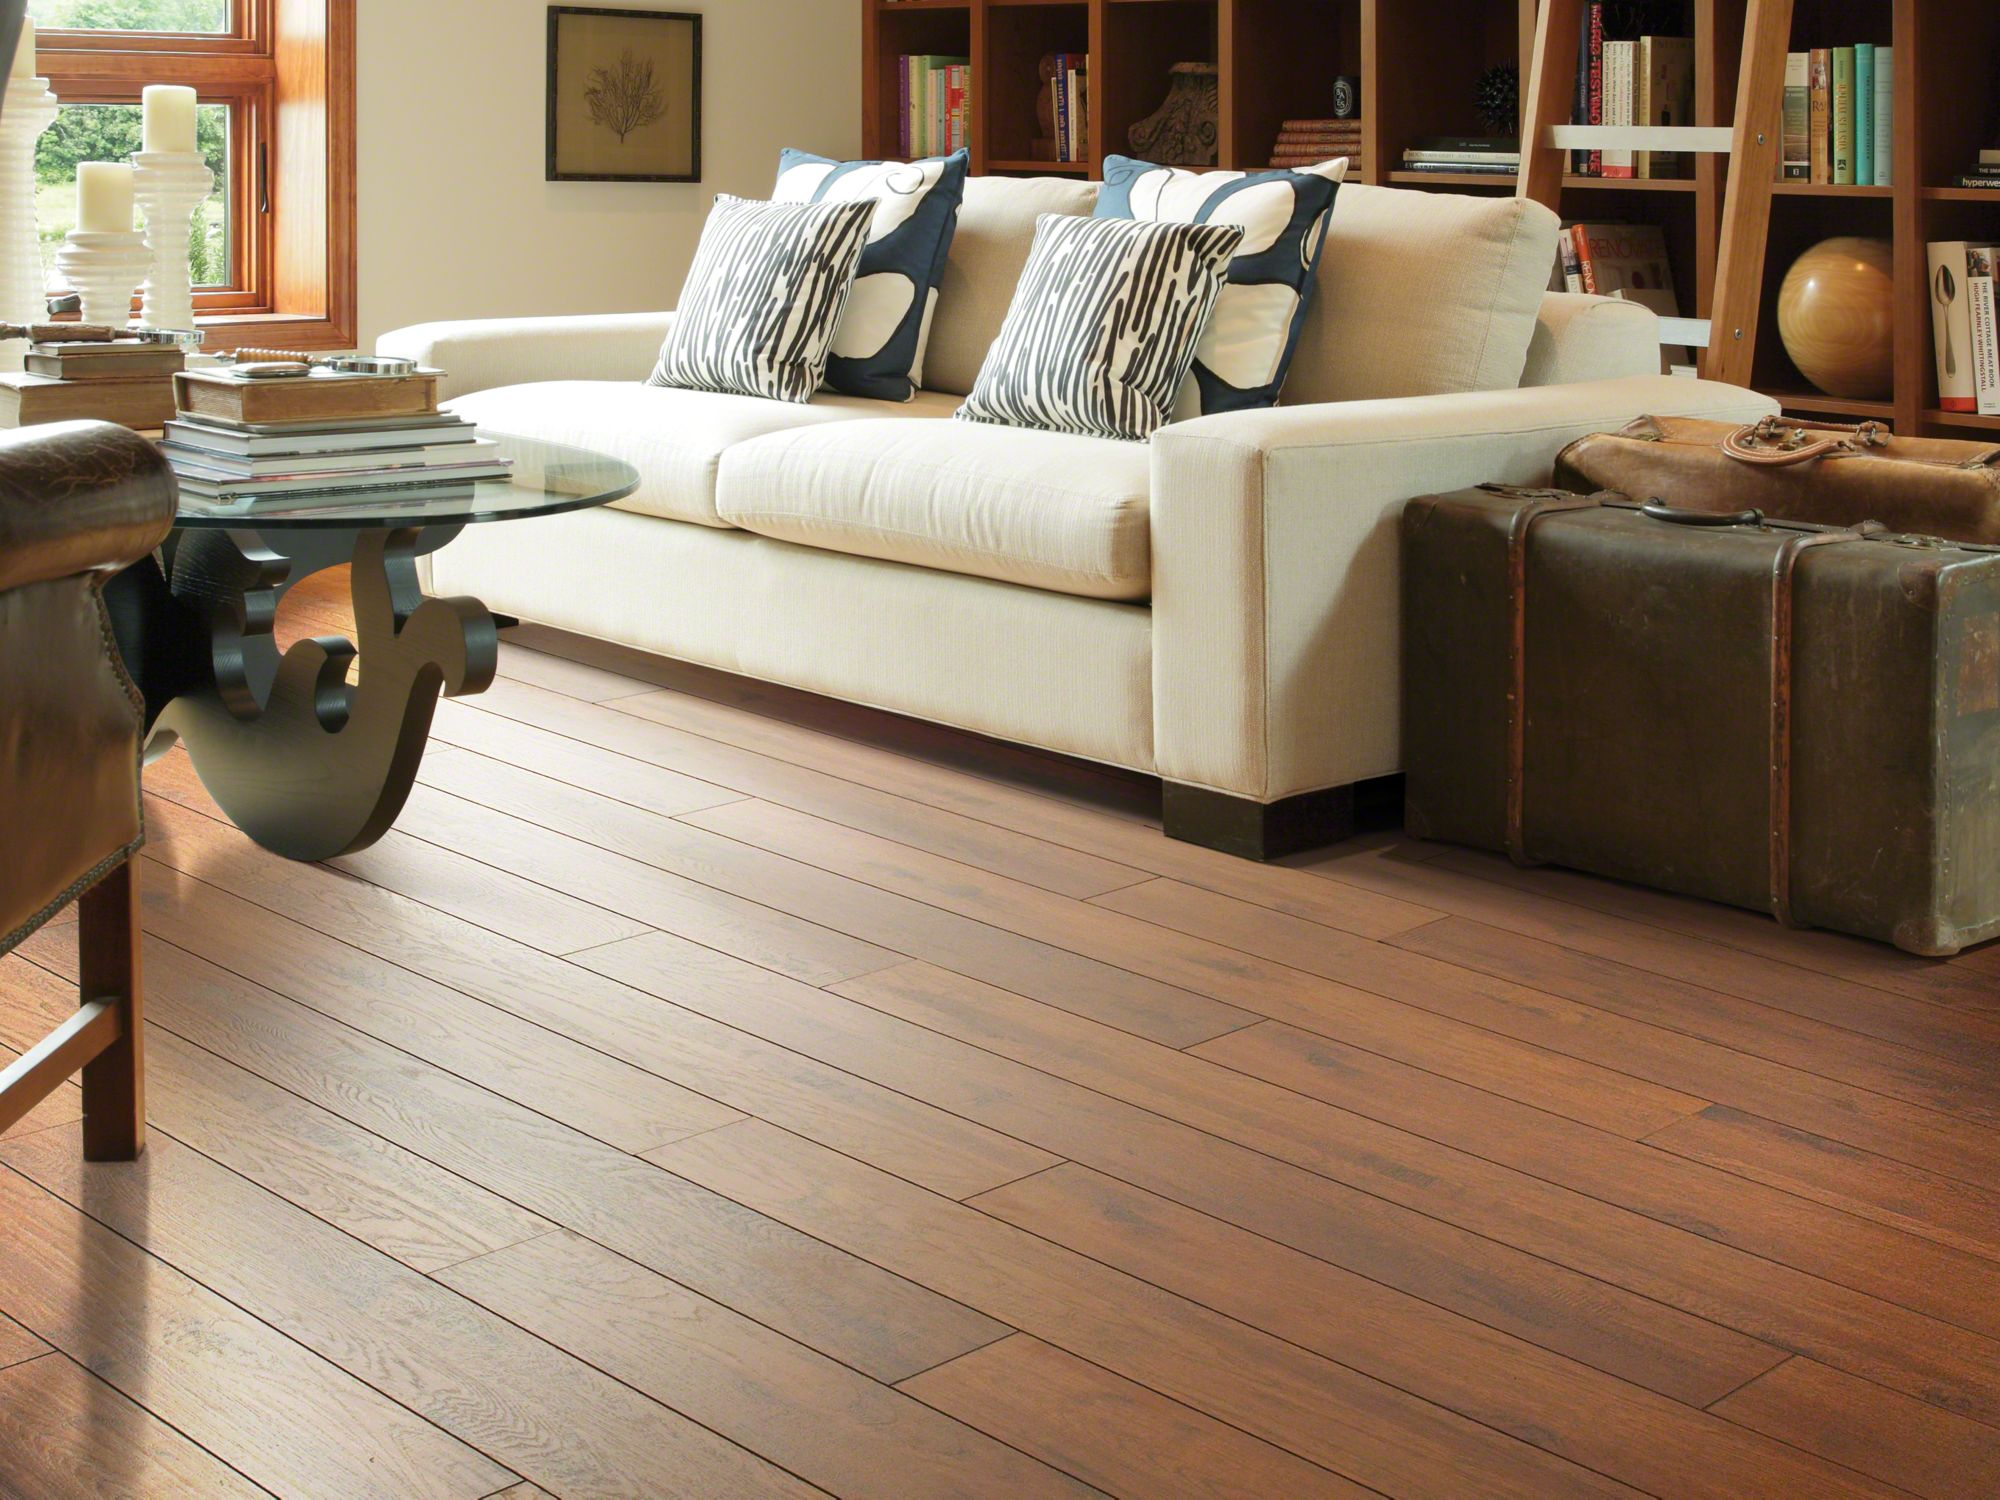 w-clean-installing-shaw-wood-laminate-flooring-shaw-wood-flooring-retailers-shaw-hardwood-flooring-family-reunion-shaw-real-wood-flooring-quality-of-shaw-wood-flooring-shaw-hardwood-flooring-p.jpg